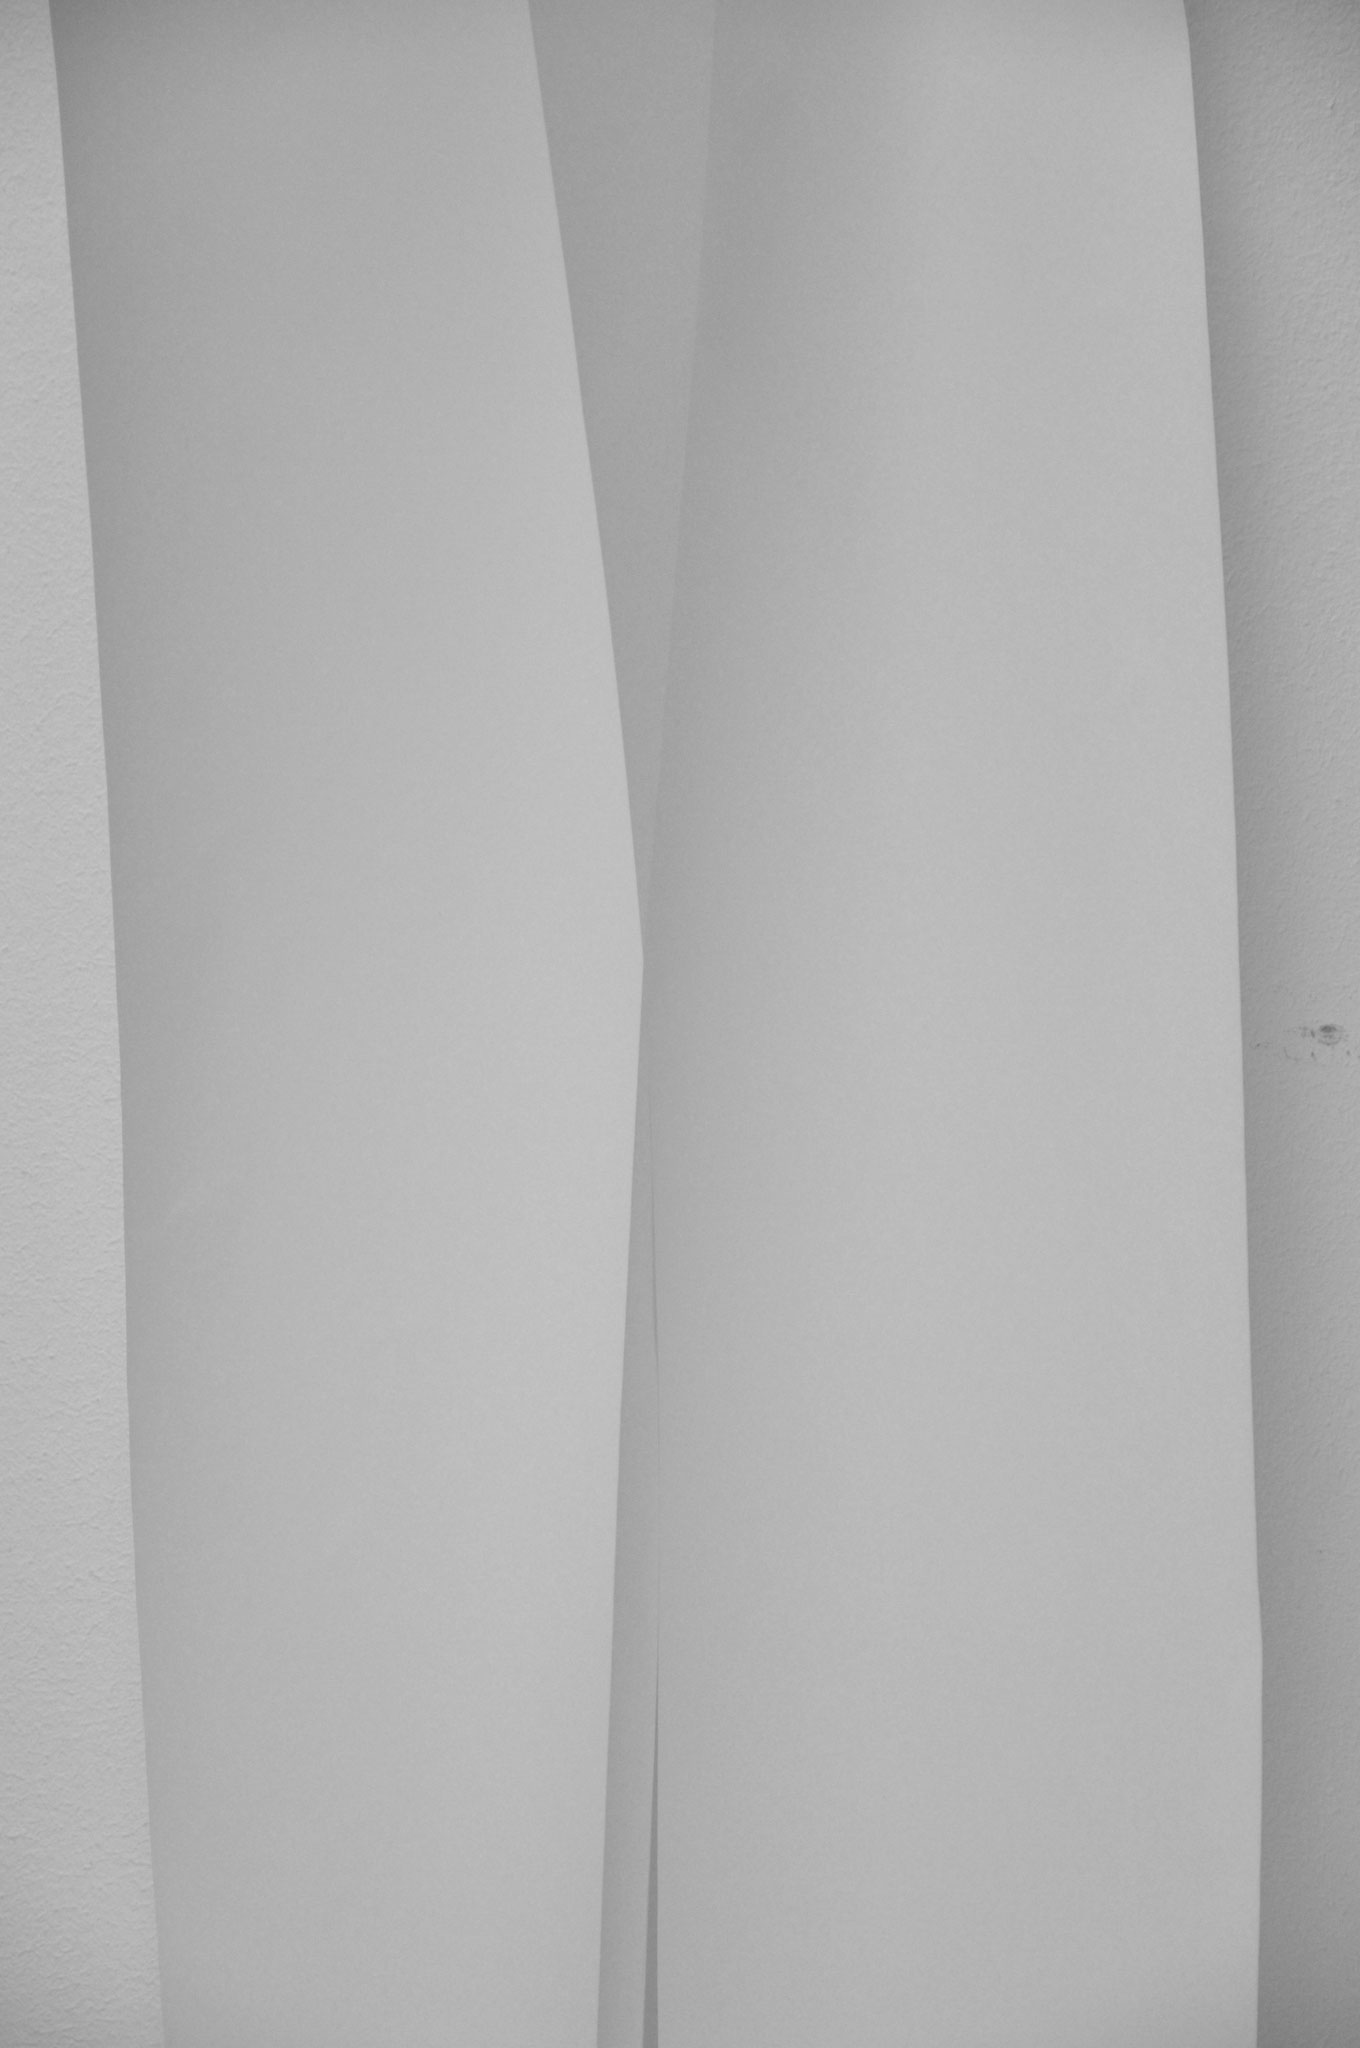 Paper Stills; 2010; Digitalfoto; 60 x 80 cm